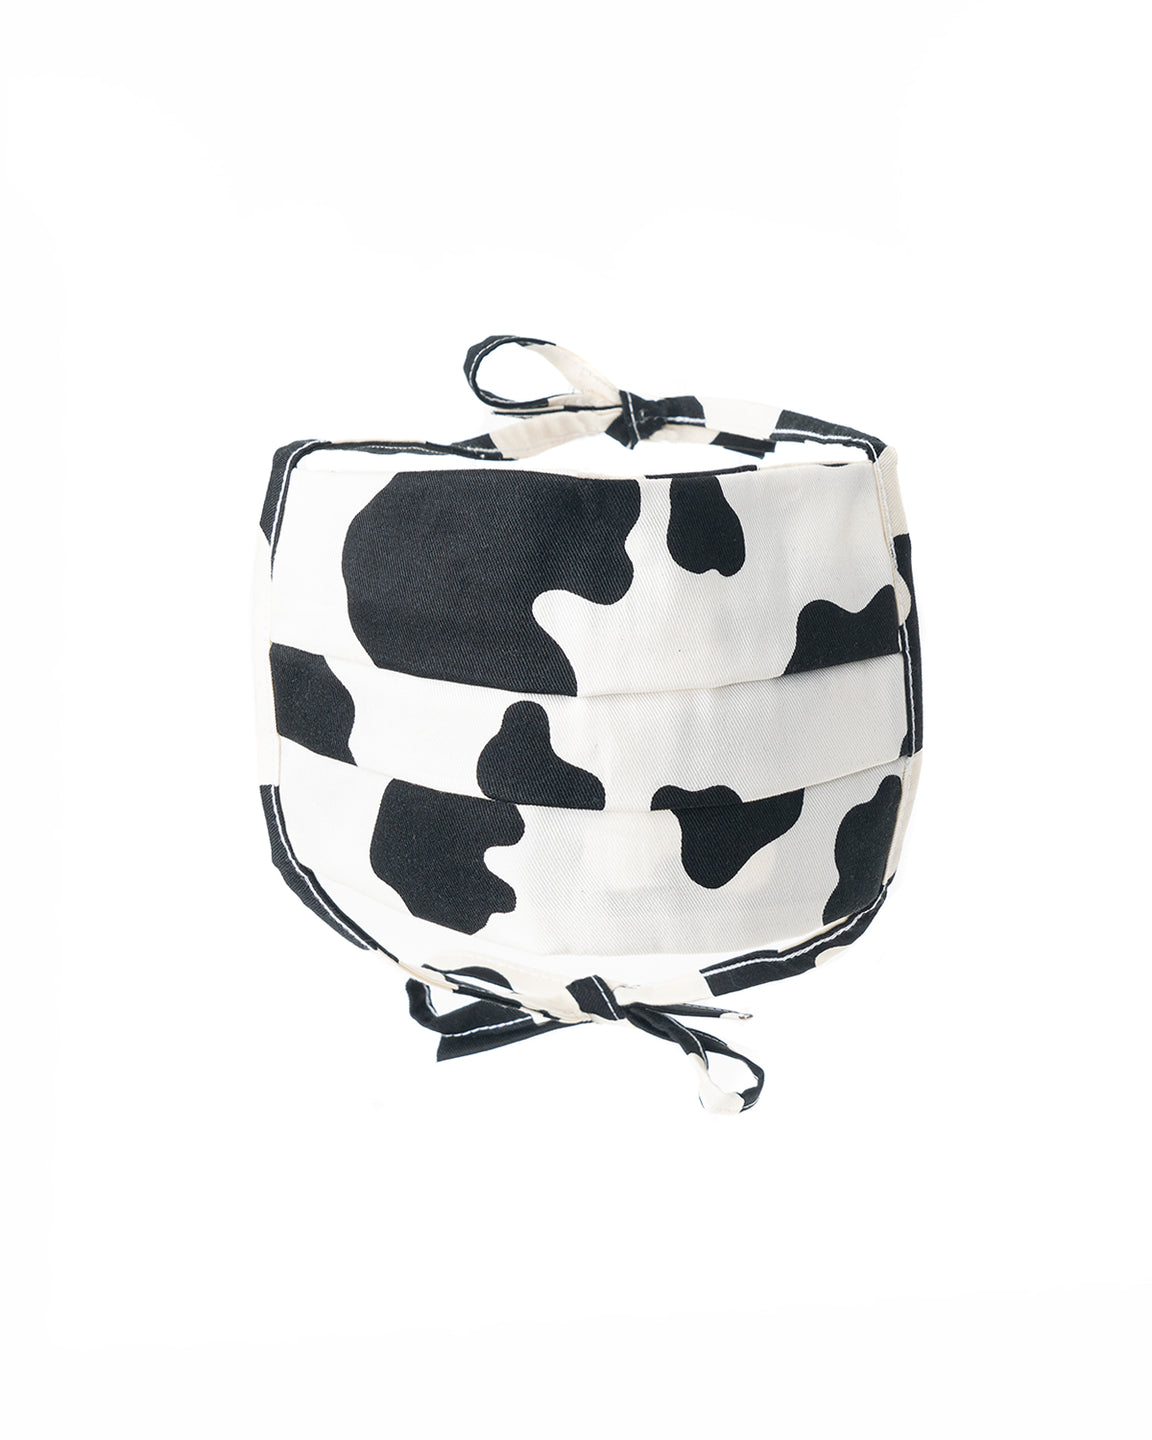 Reversible Cow Face Protection Garment - Cow/Black